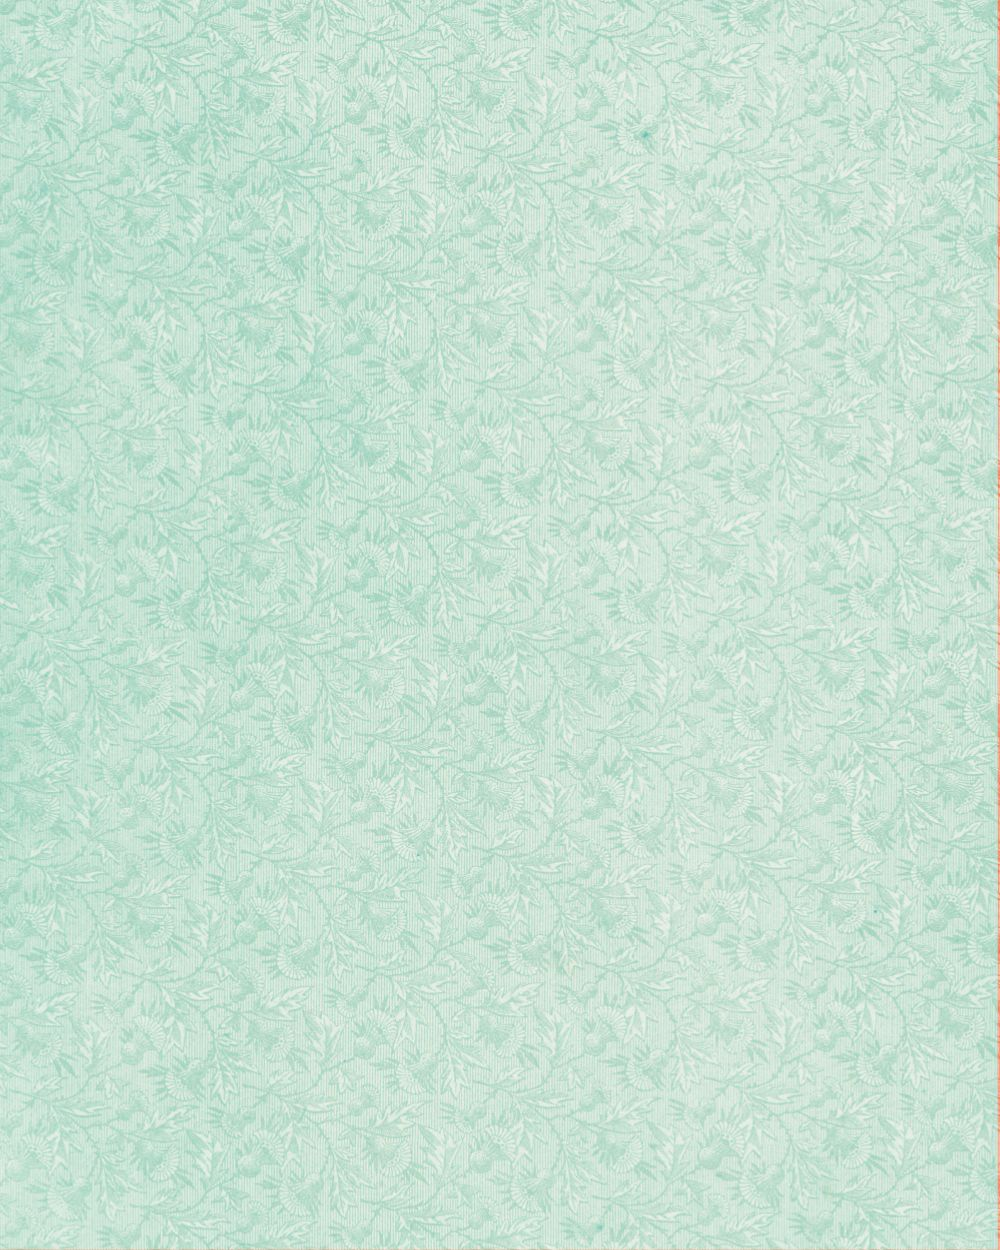 image relating to Free Printable Backgrounds for Paper titled Cost-free Floral Paper Backgrounds Backgrounds! Tile